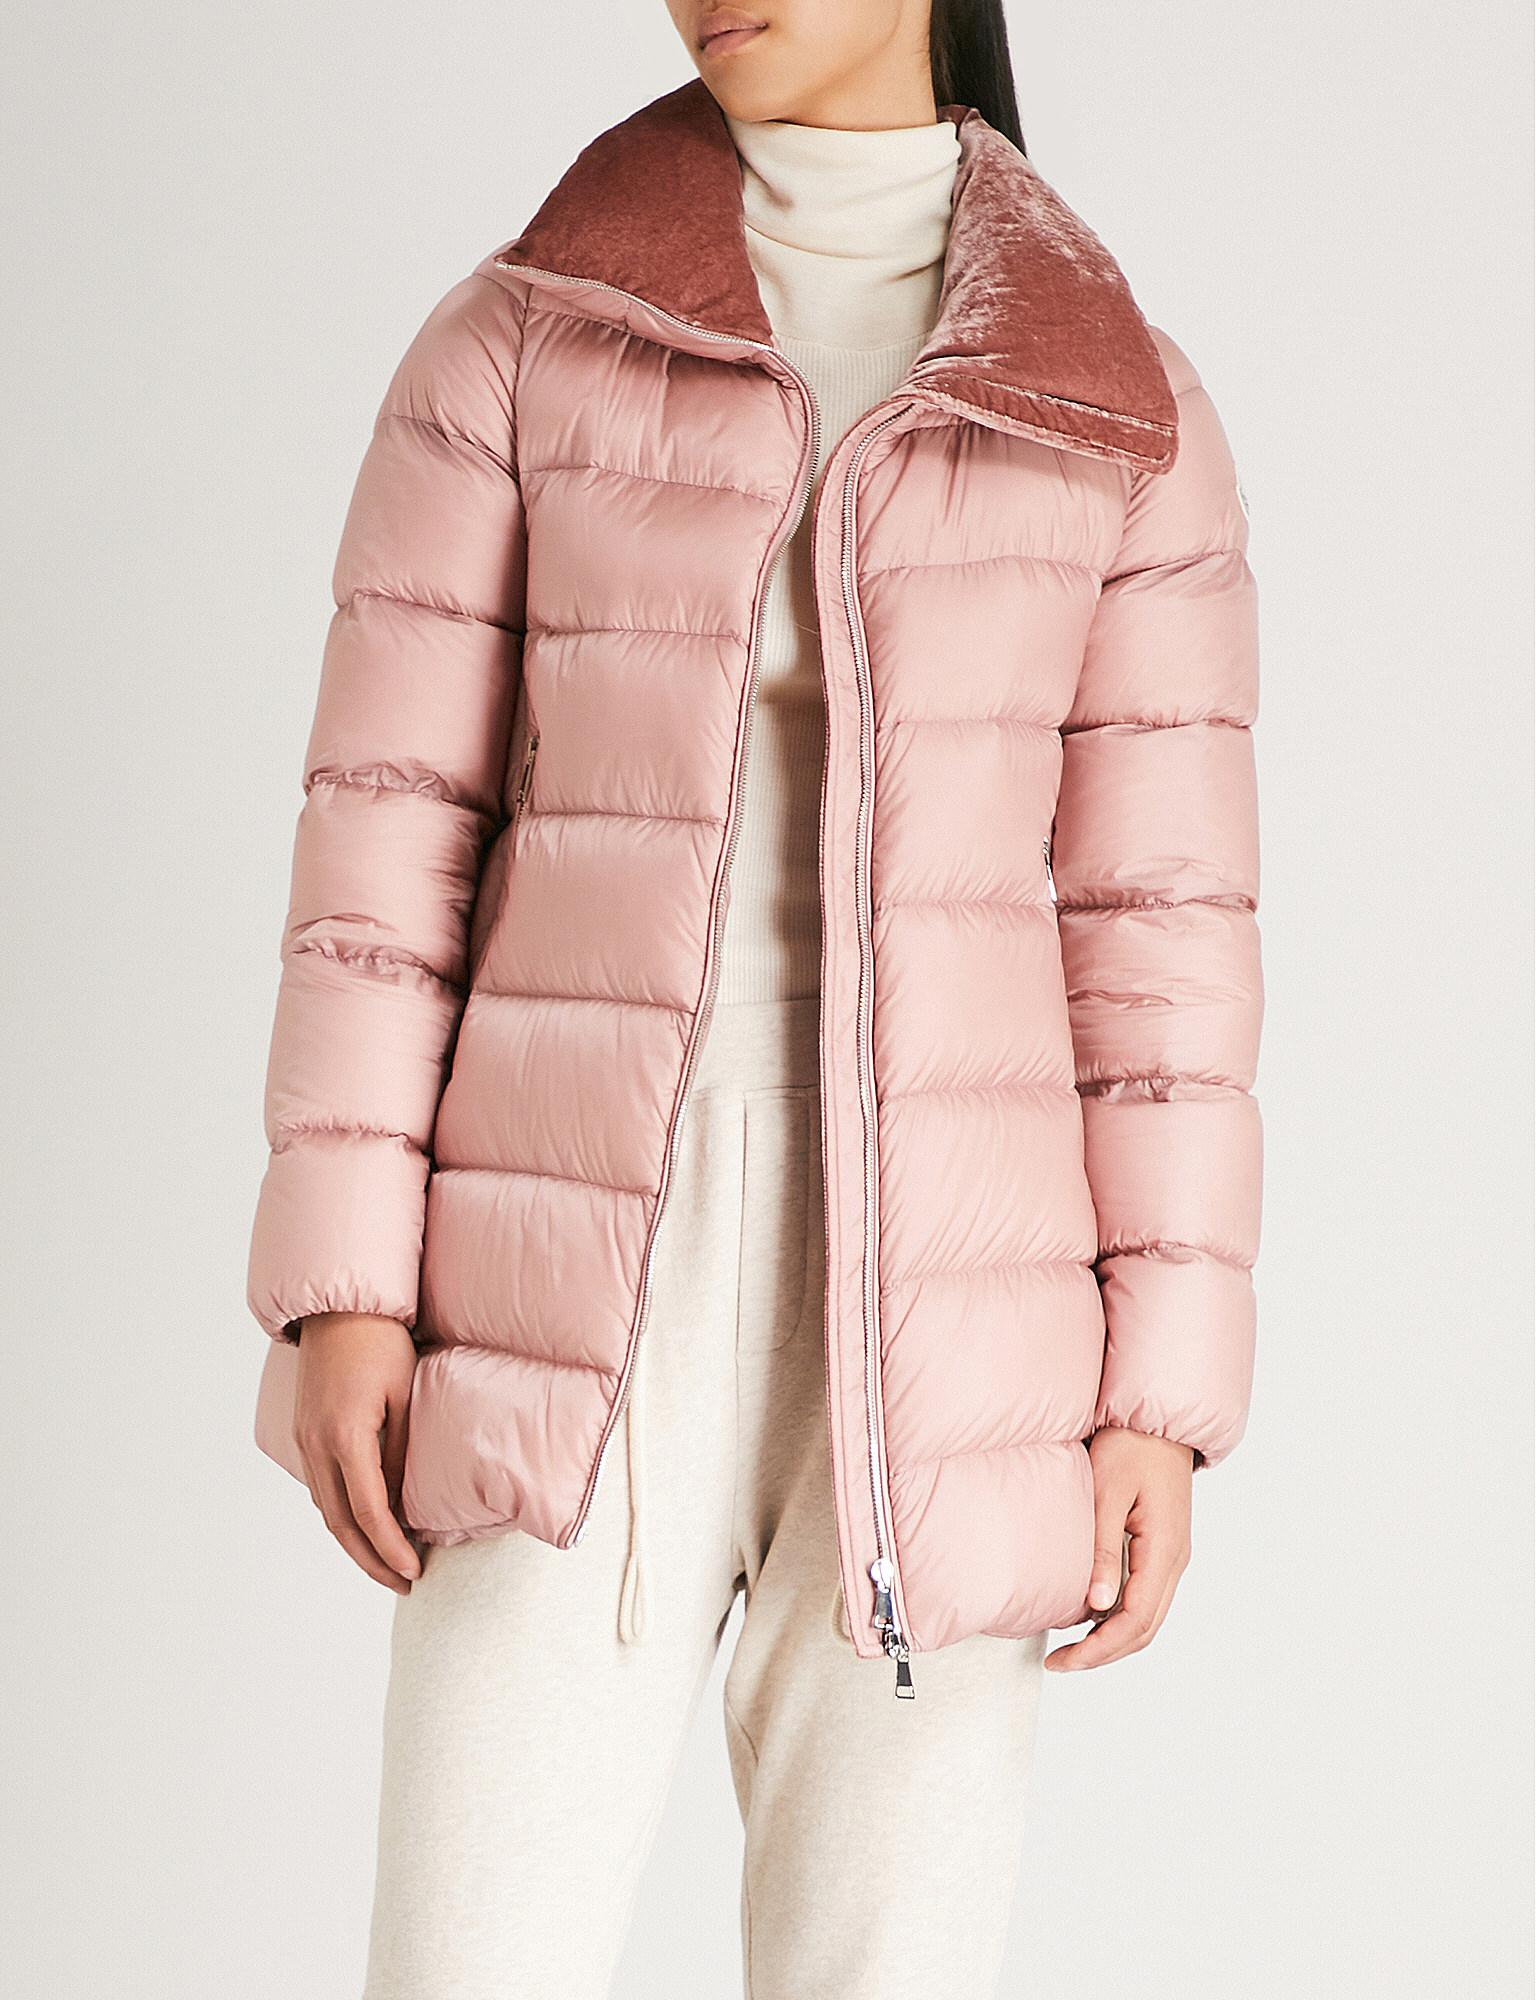 274ec8d2937e reduced moncler coat pink roses 6ef64 163aa